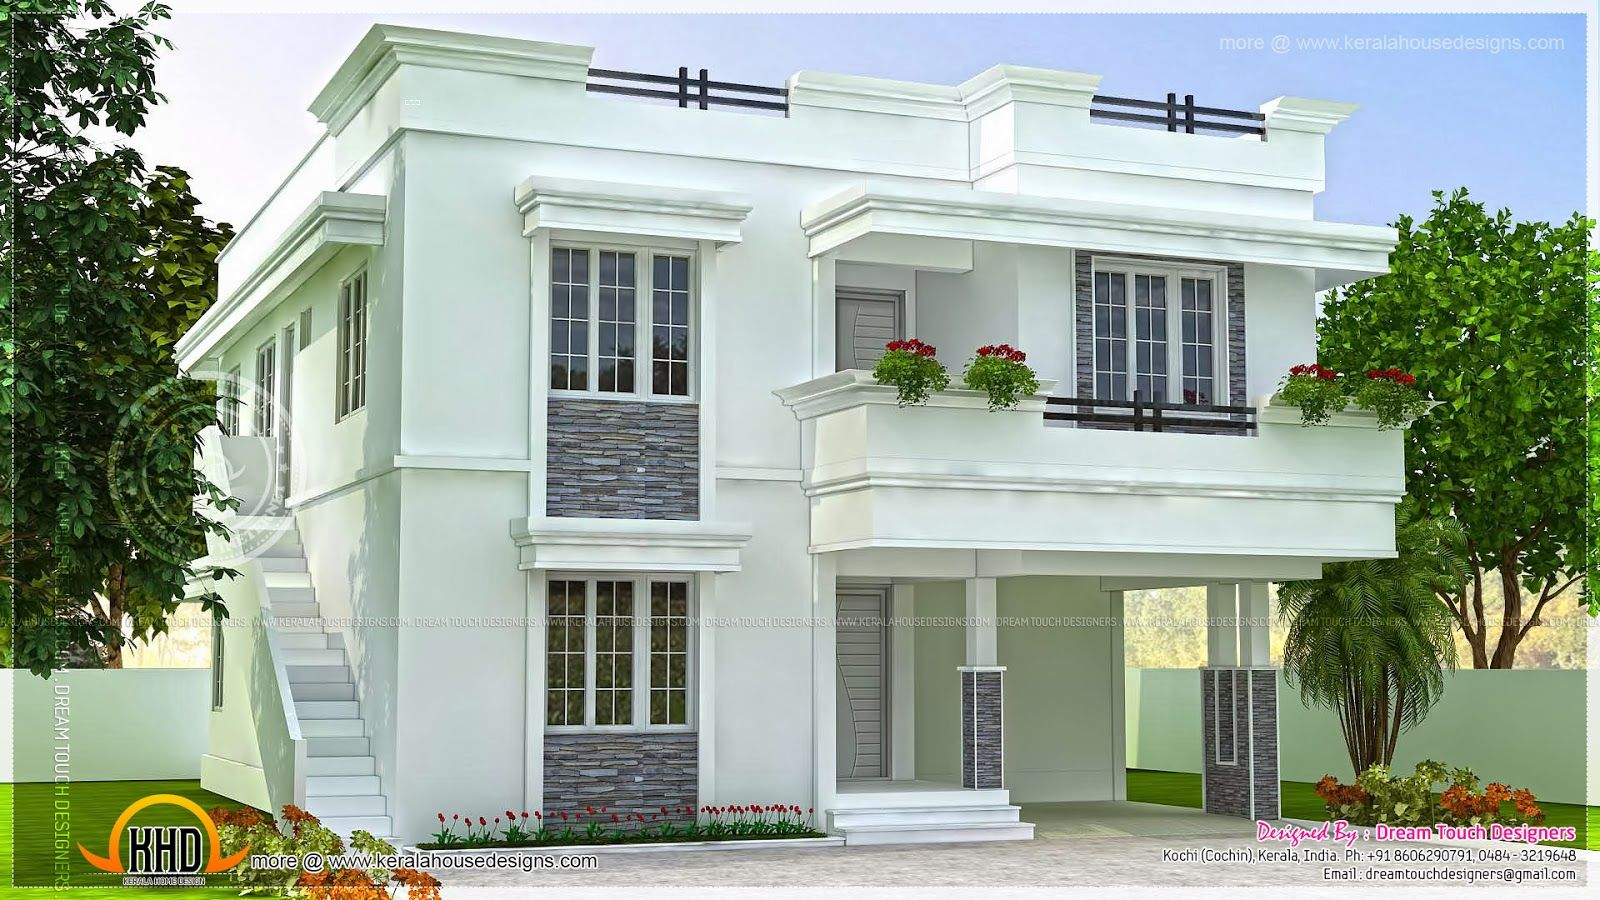 Modern beautiful home modern beautiful home design indian Beautiful home designs inside